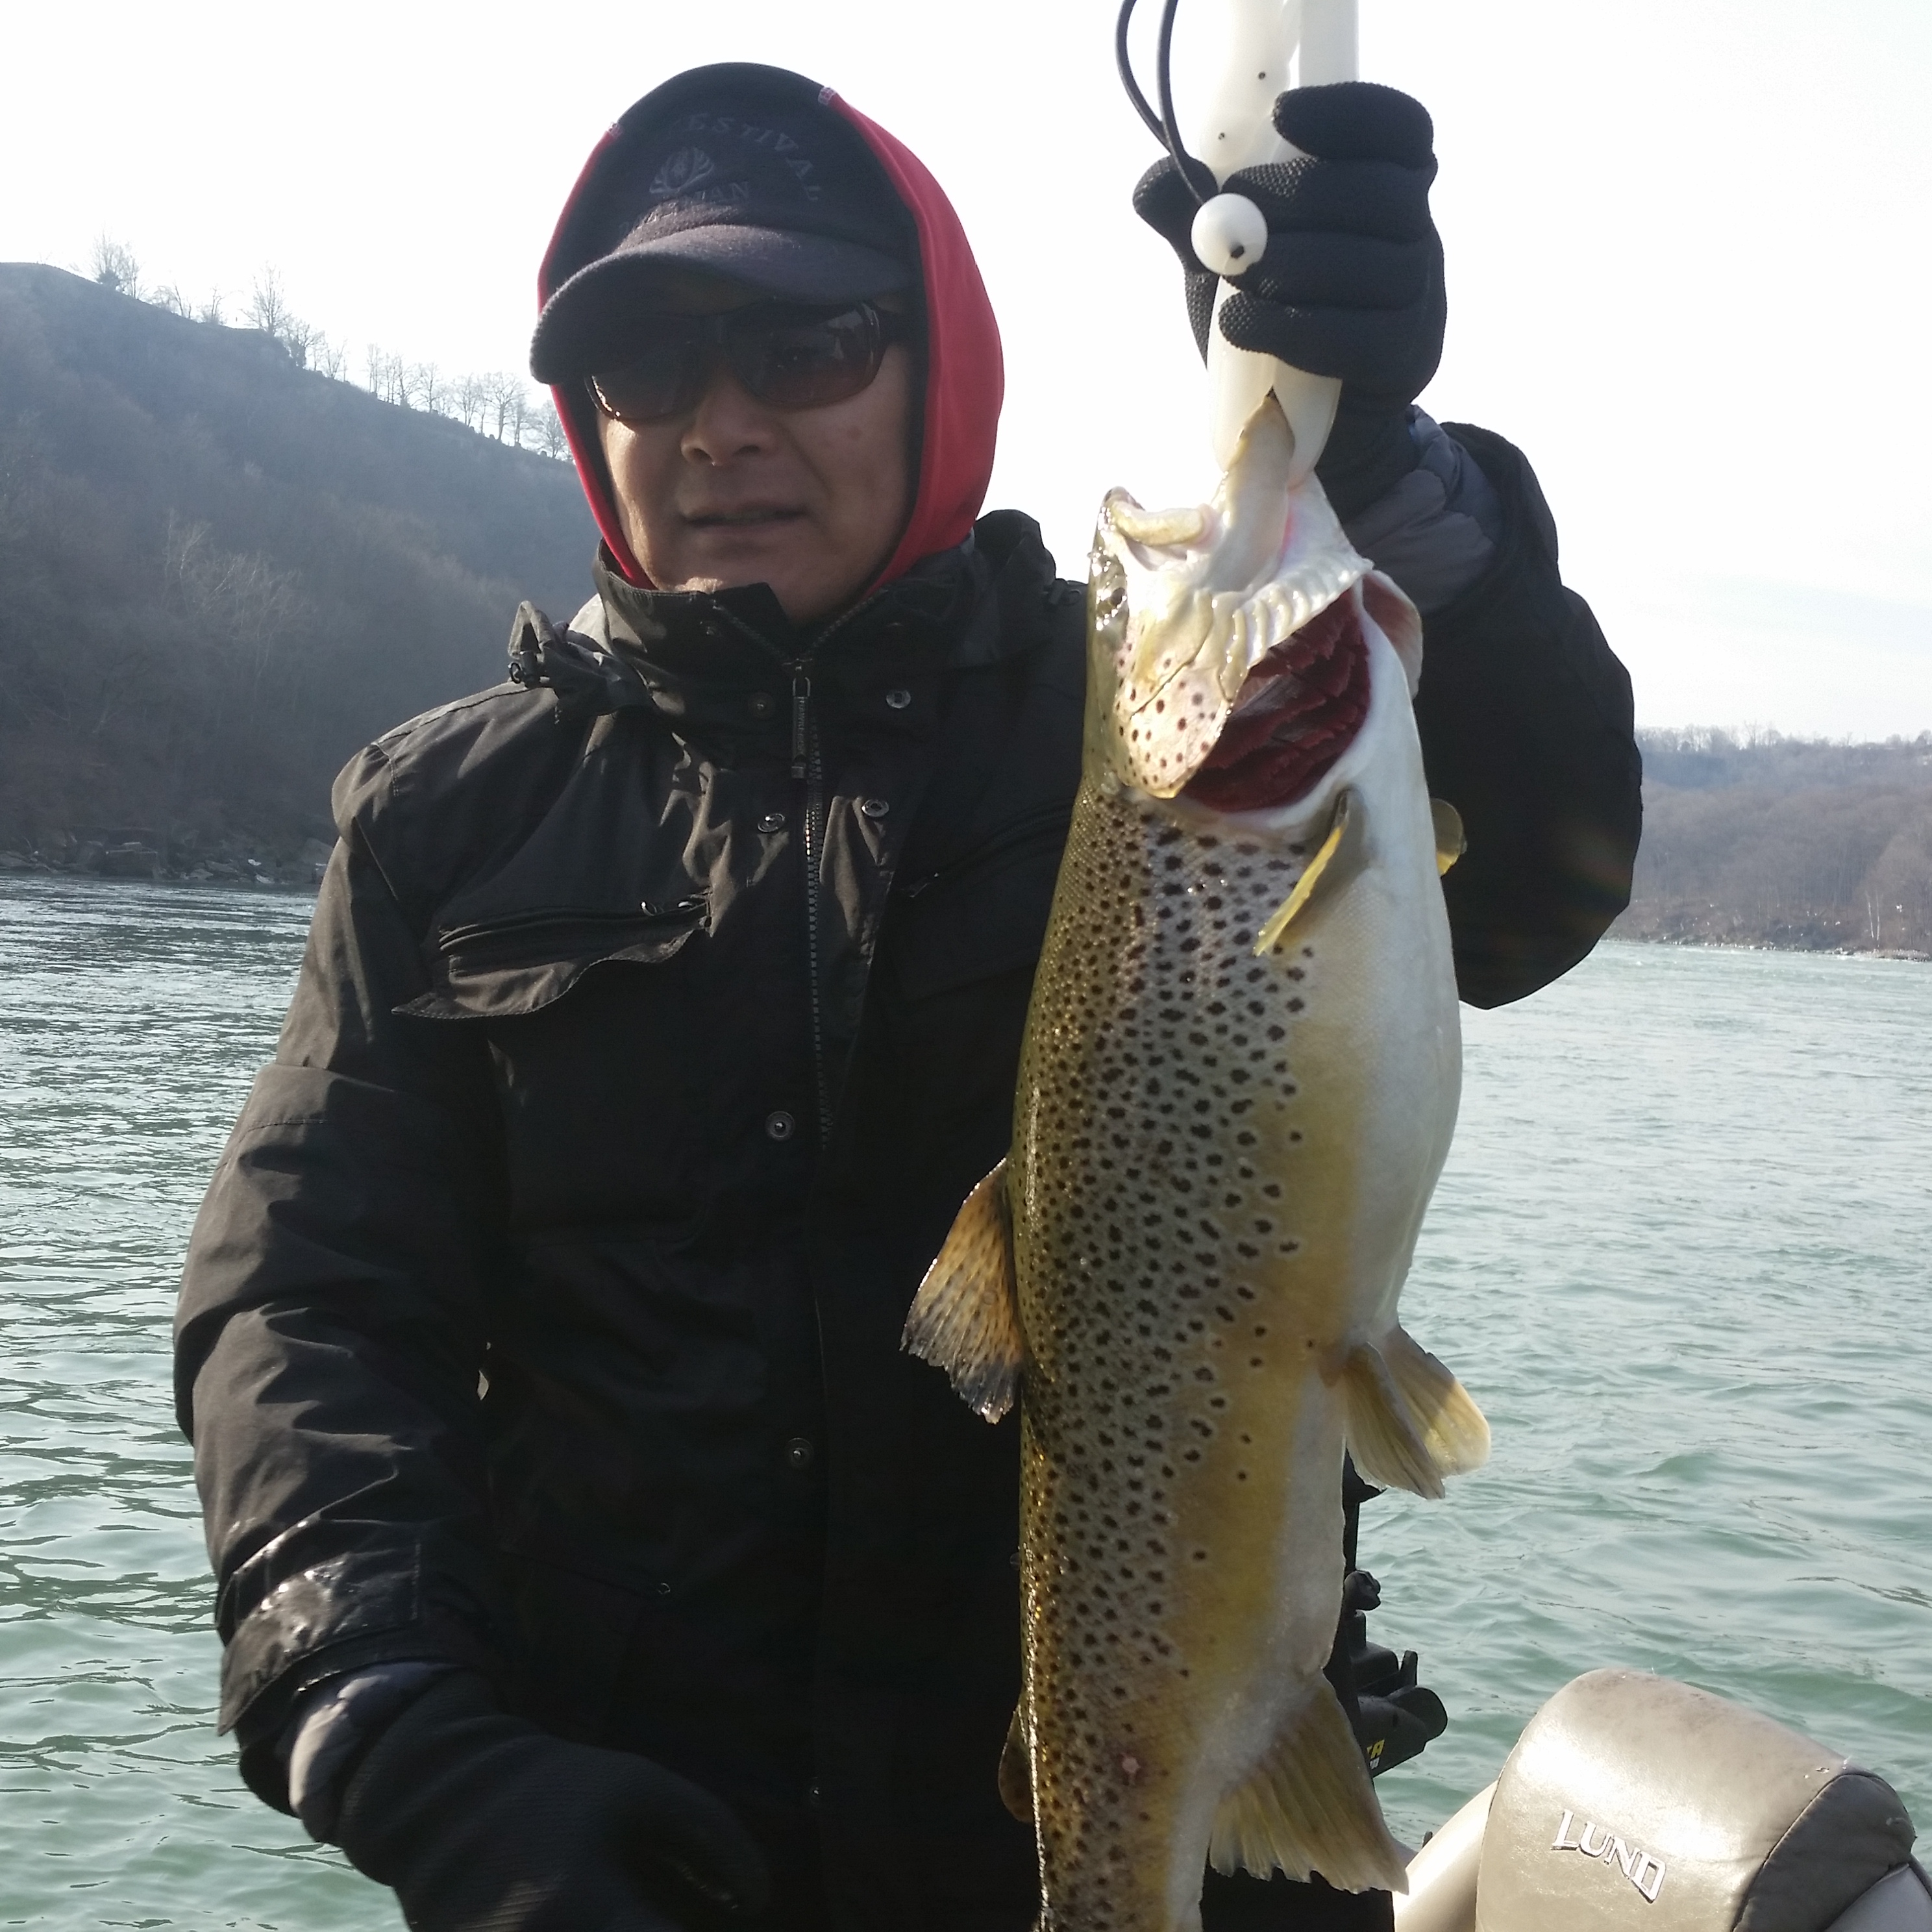 Drab6 fishing charters coupons near me in lewiston 8coupons for Fishing tours near me